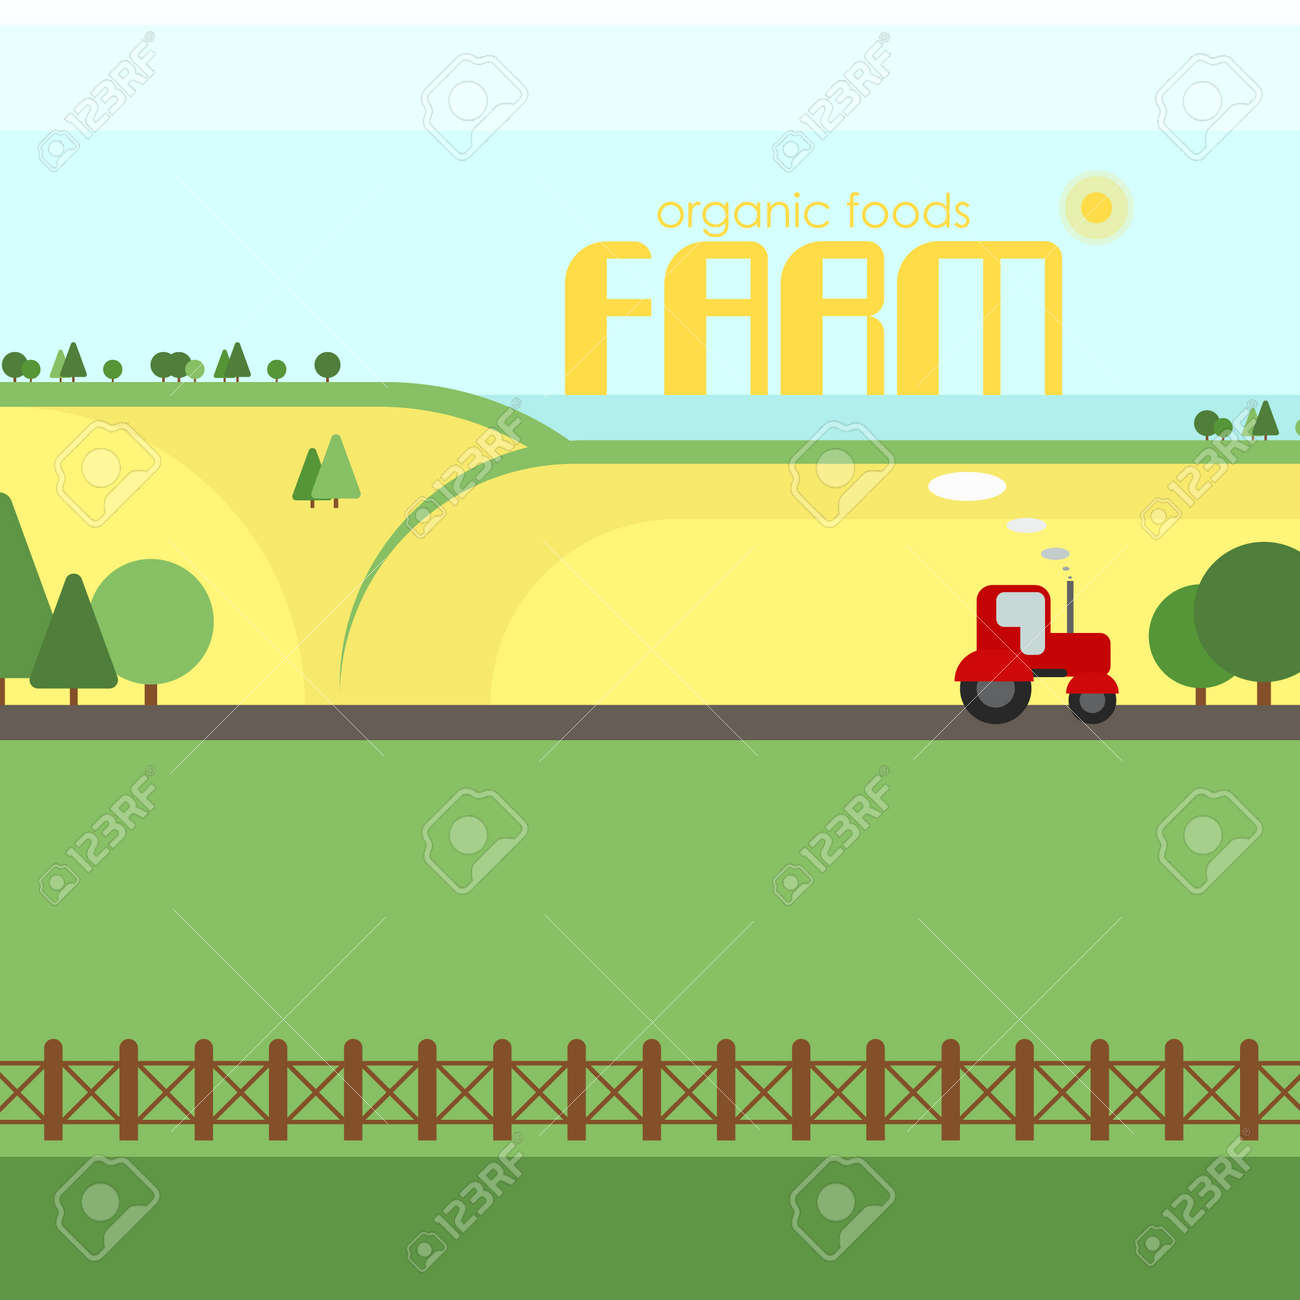 Agriculture Farm Organic Foods Rural Landscape Design Elements Royalty Free Cliparts Vectors And Stock Illustration Image 67388790